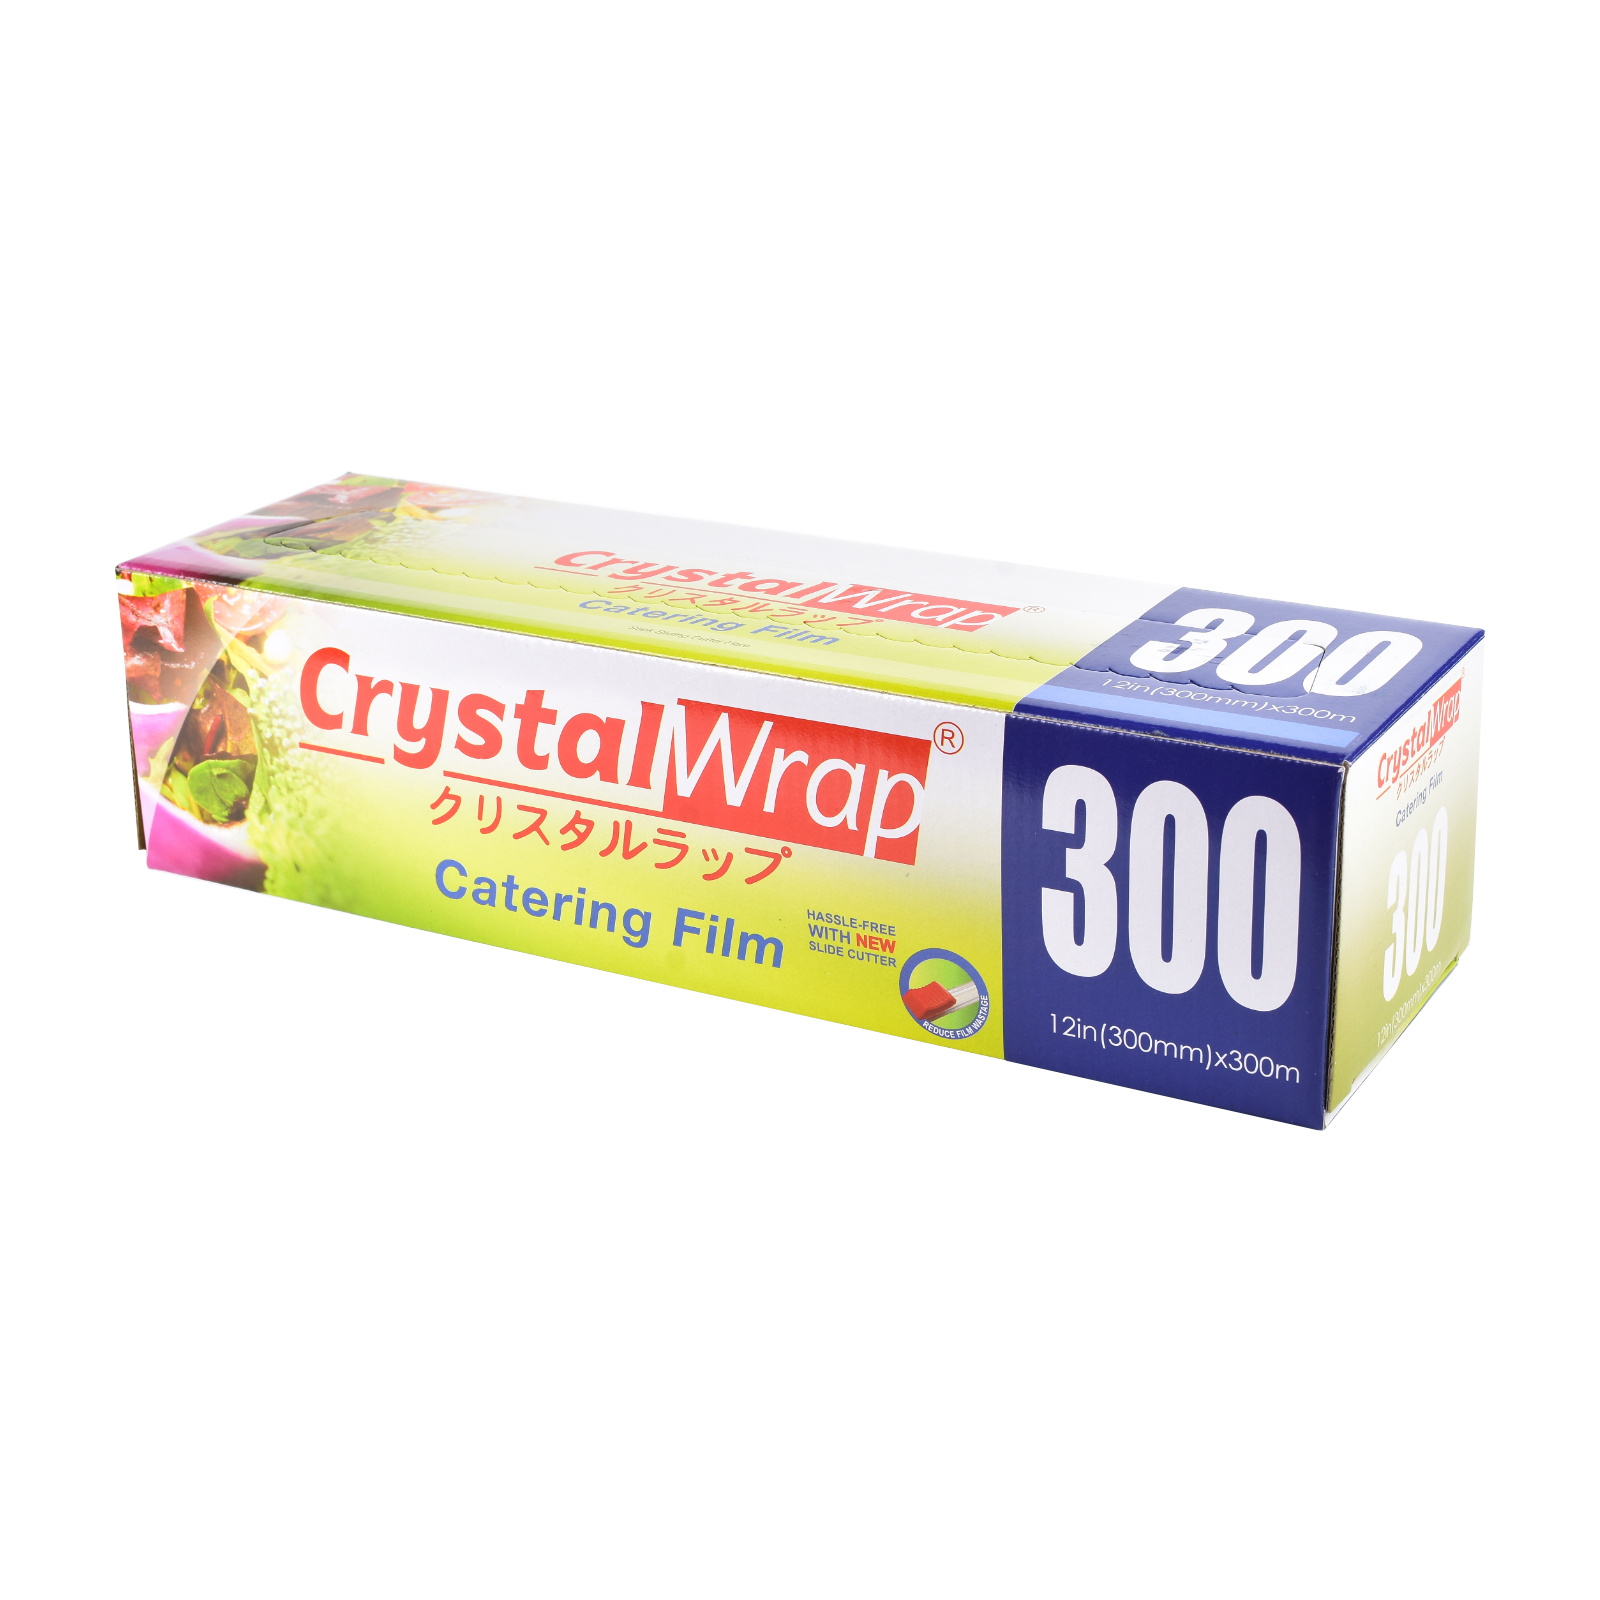 crystal wrap catering film 300 x 300m. 3.png